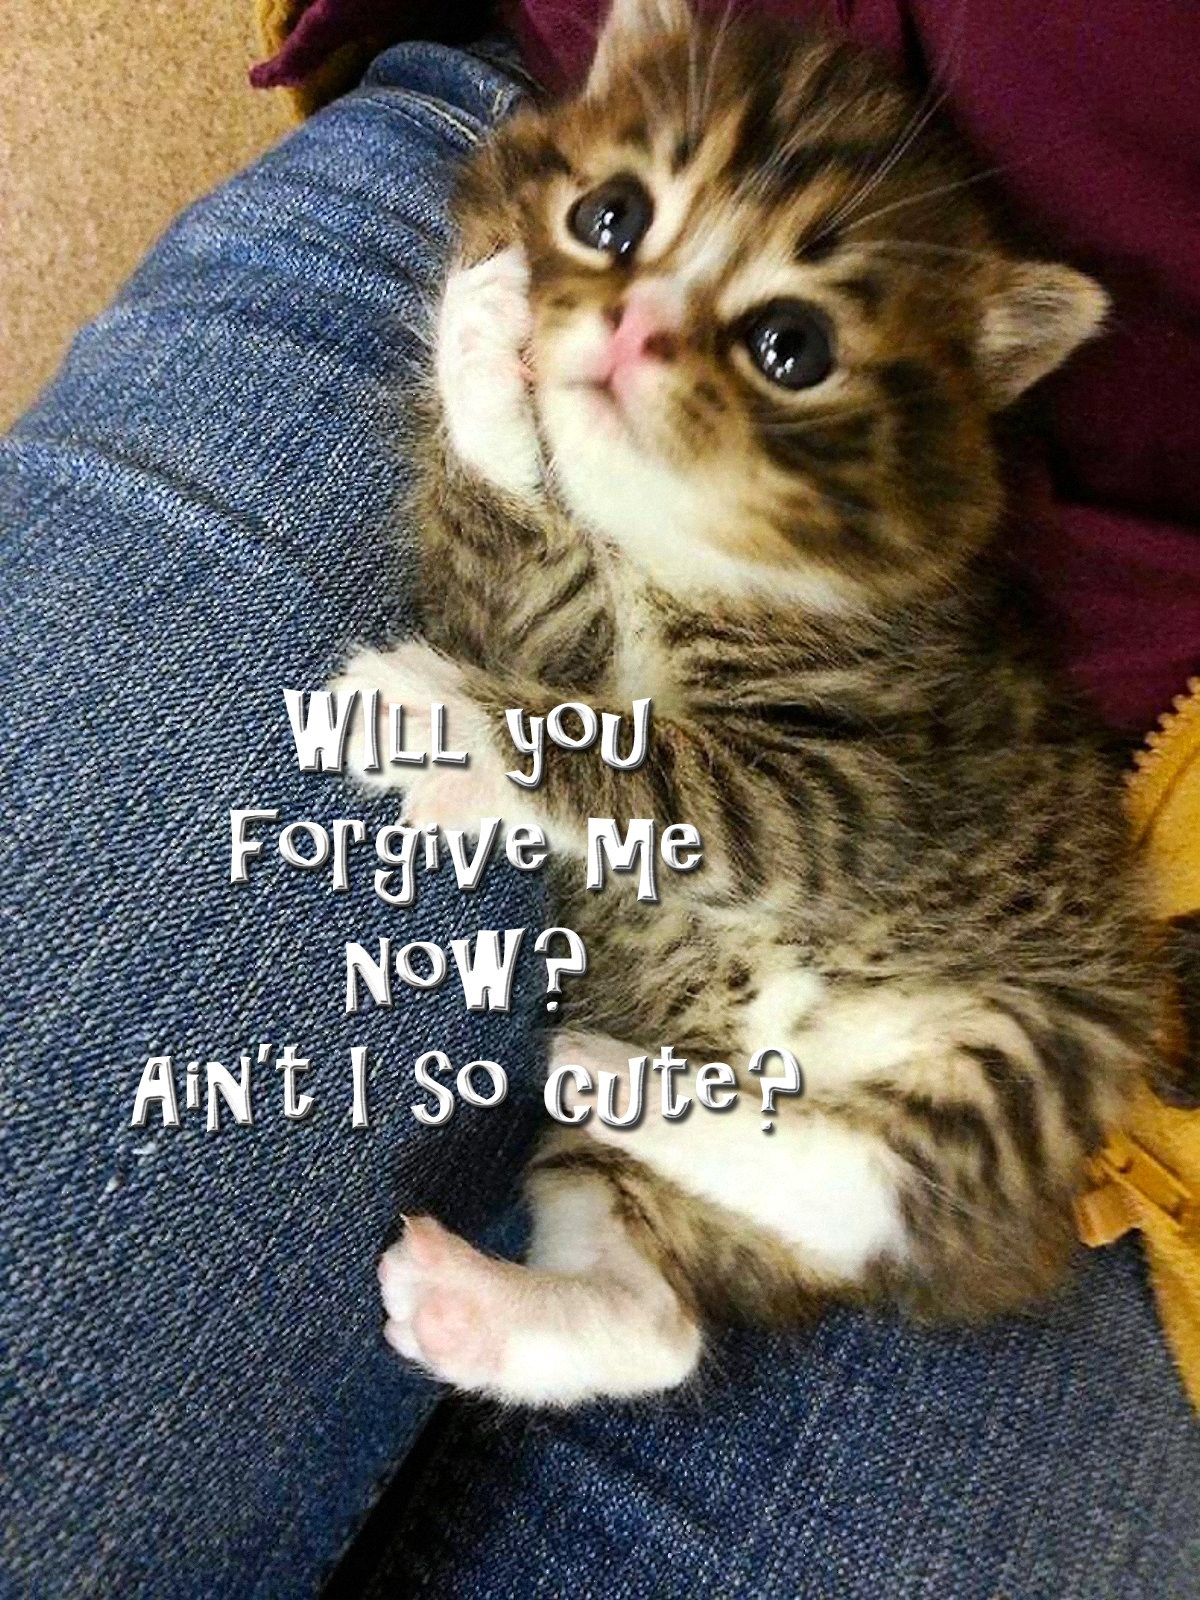 00 will you forgive me now. cat 301115